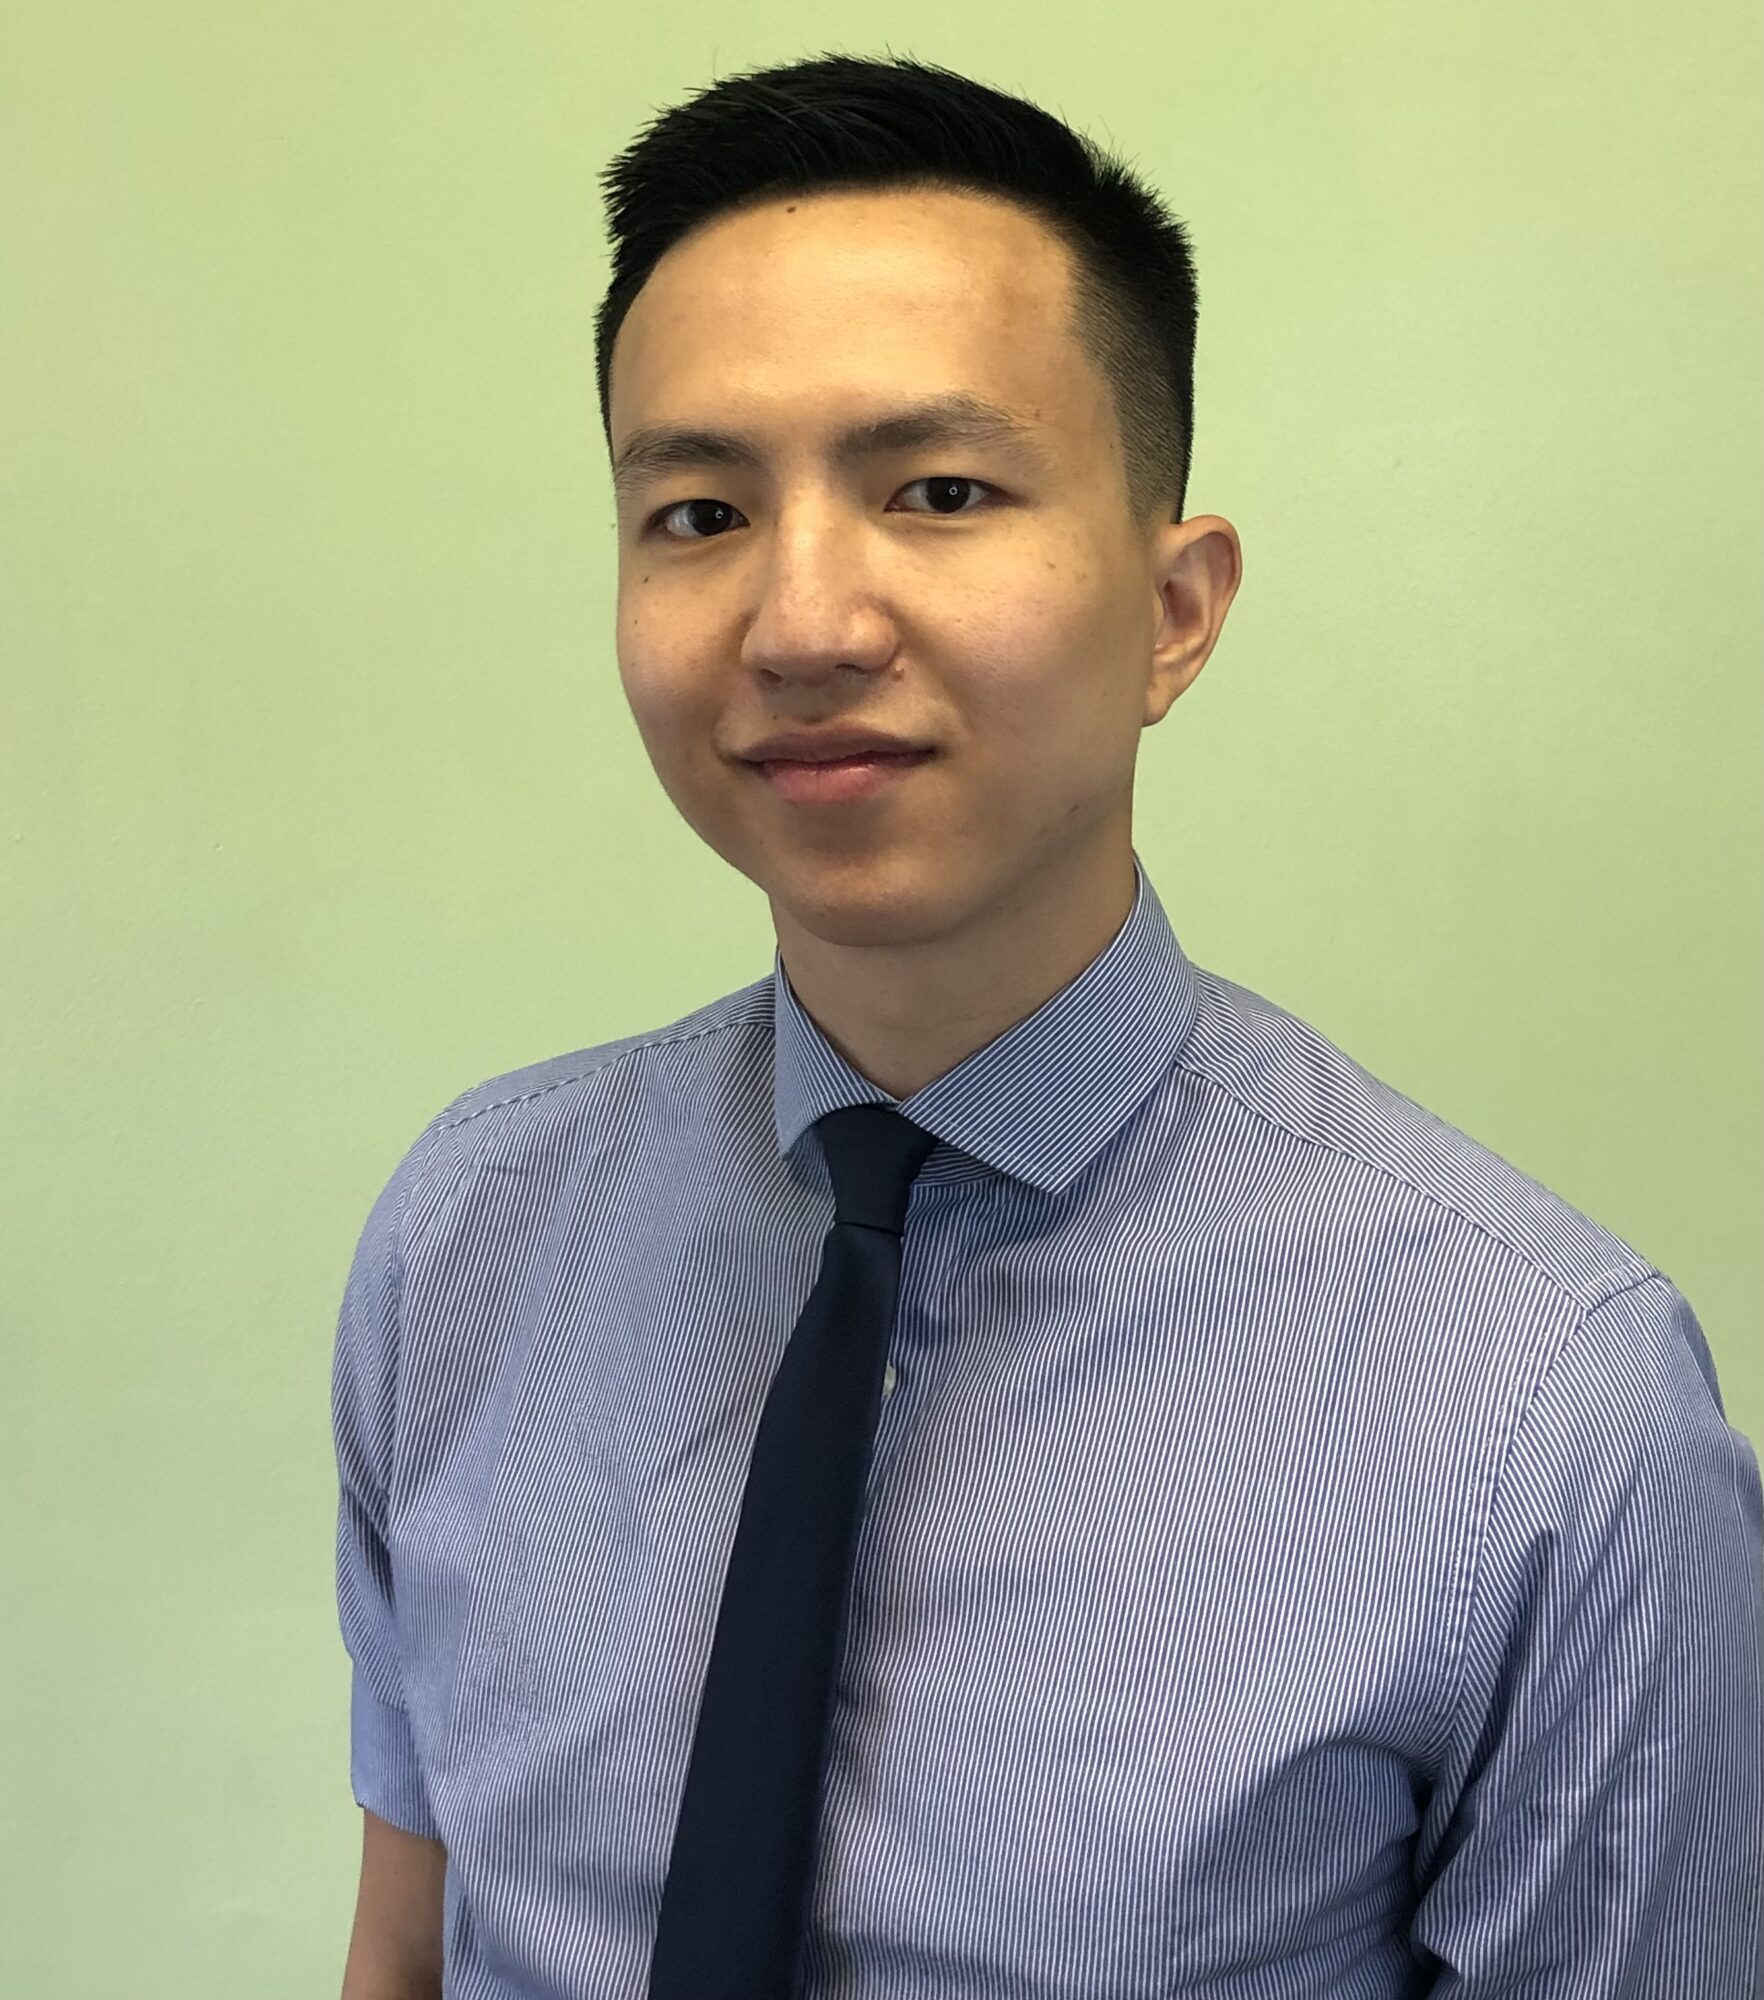 An image of Jeremy Fung